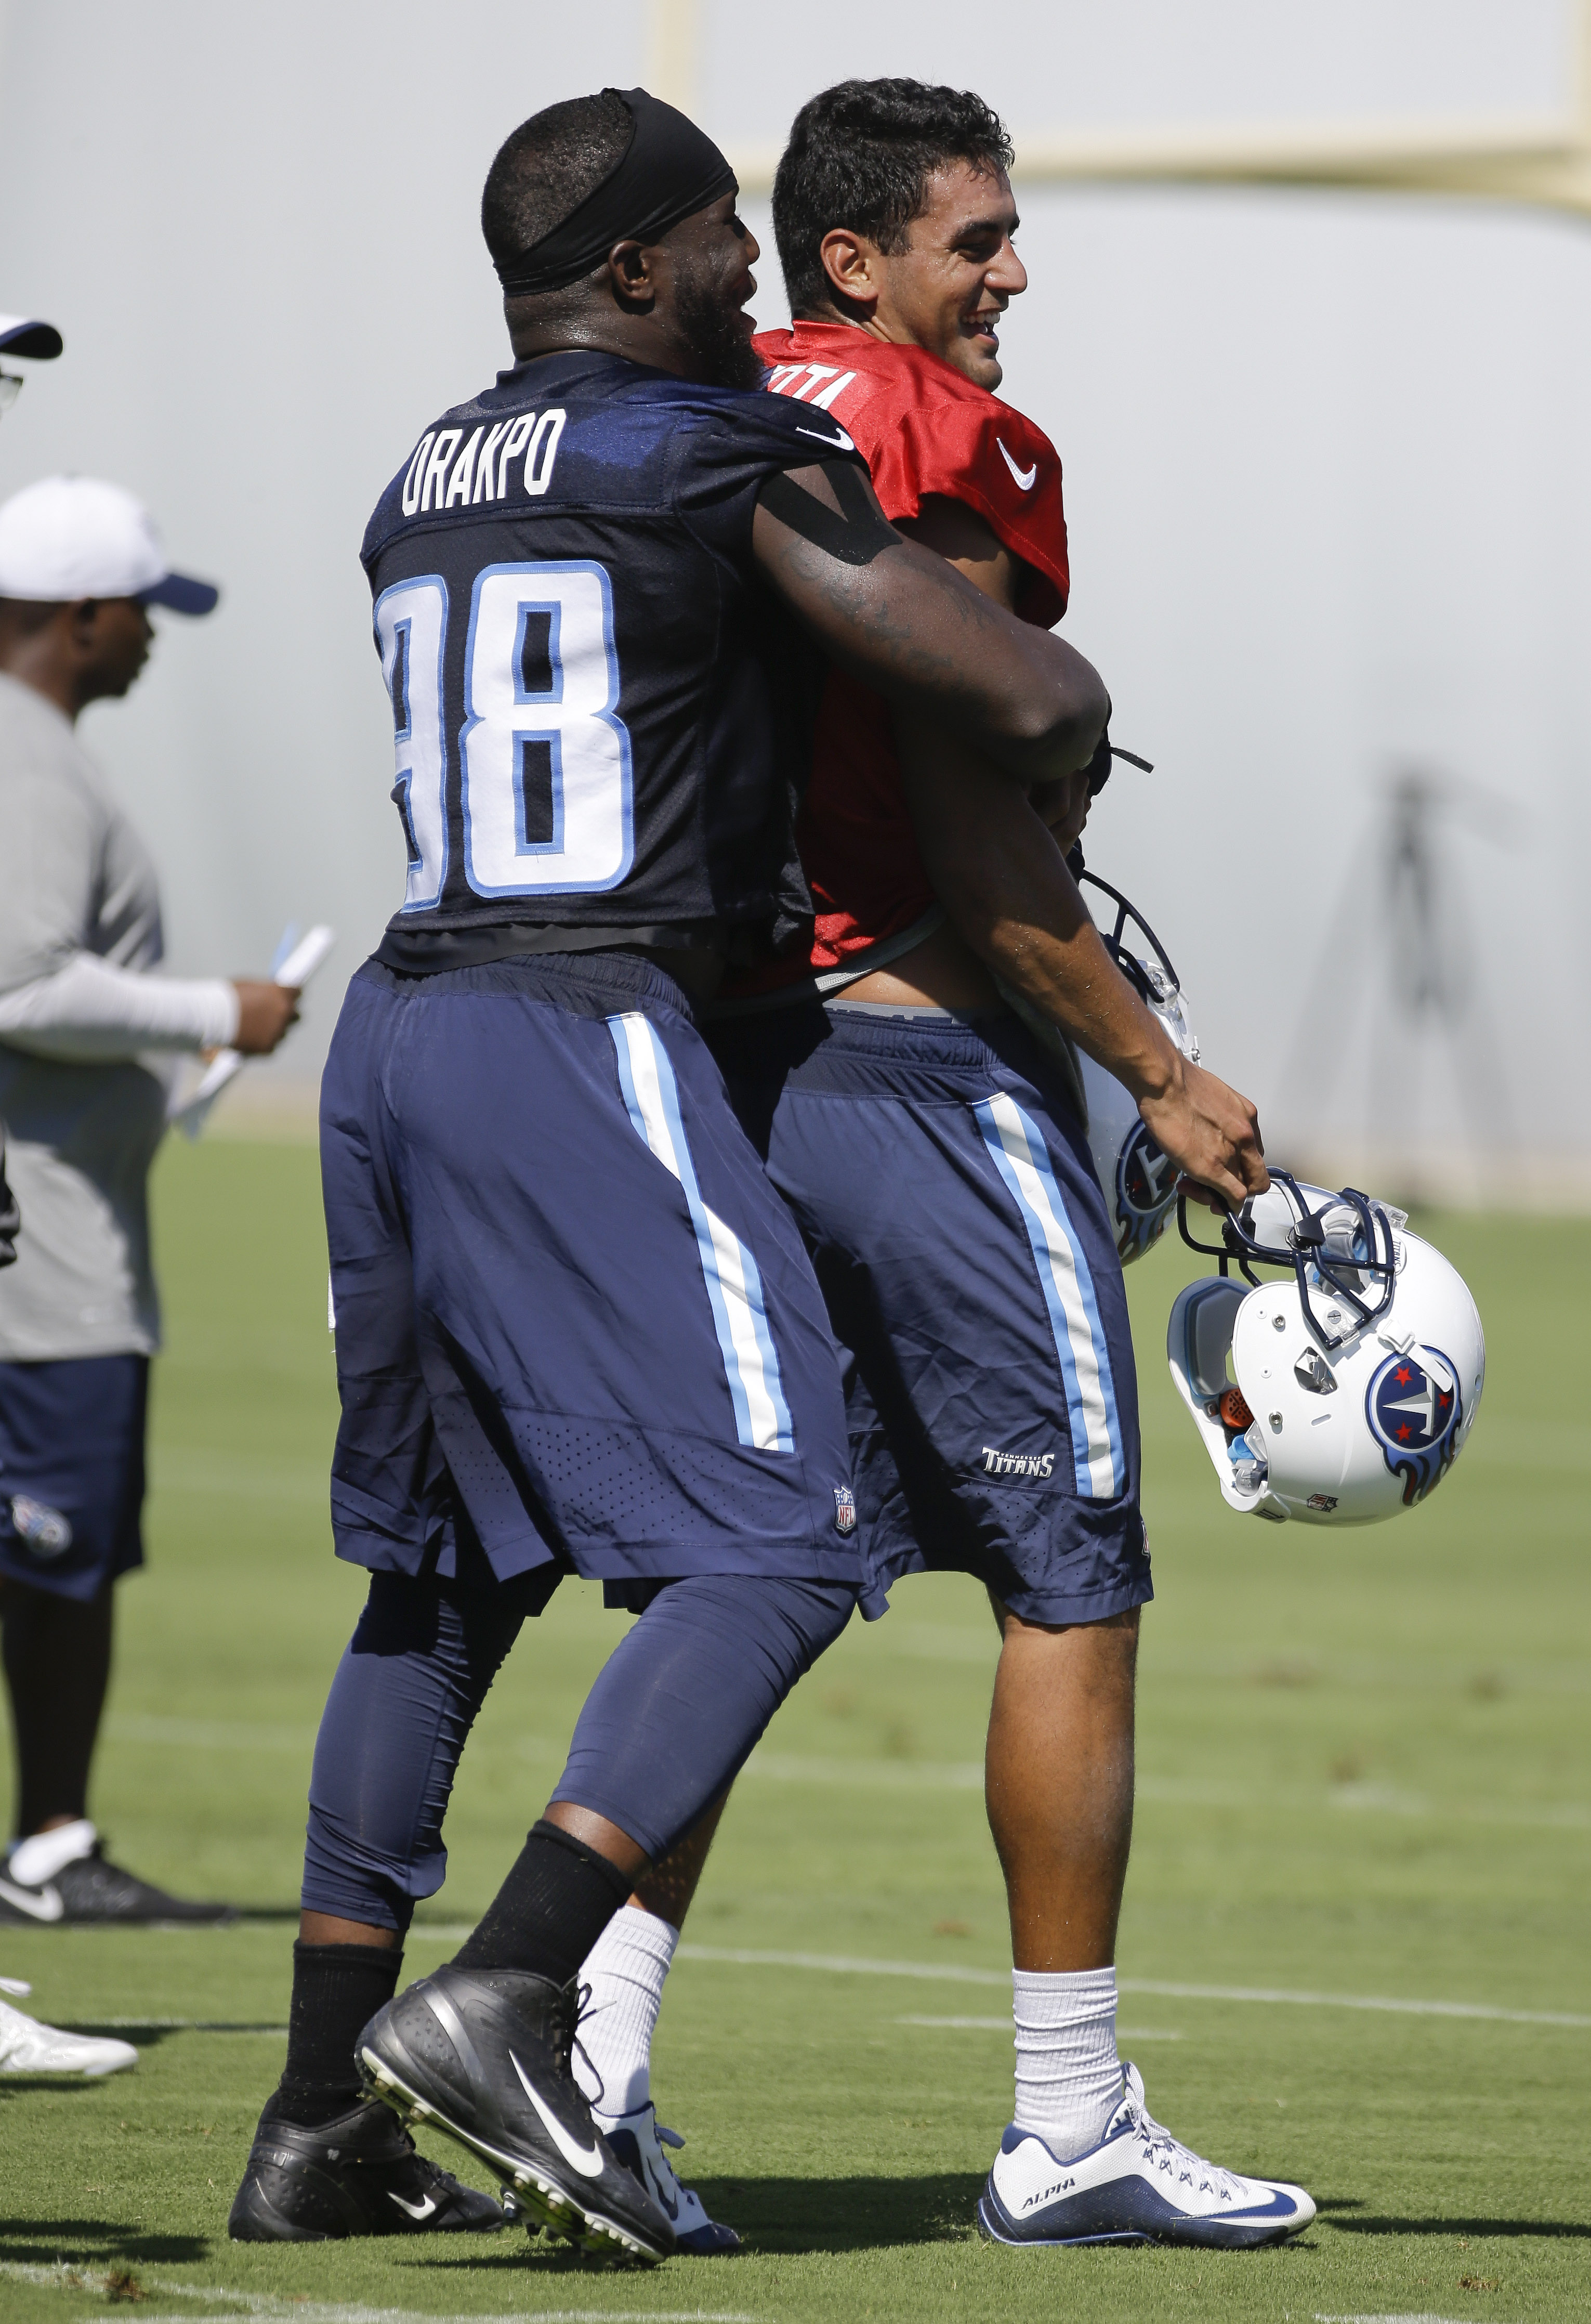 Tennessee Titans linebacker Brian Orakpo (98) hugs quarterback Marcus Mariota, right, during the first day of NFL football training camp Friday, July 31, 2015, in Nashville, Tenn. (AP Photo/Mark Humphrey)